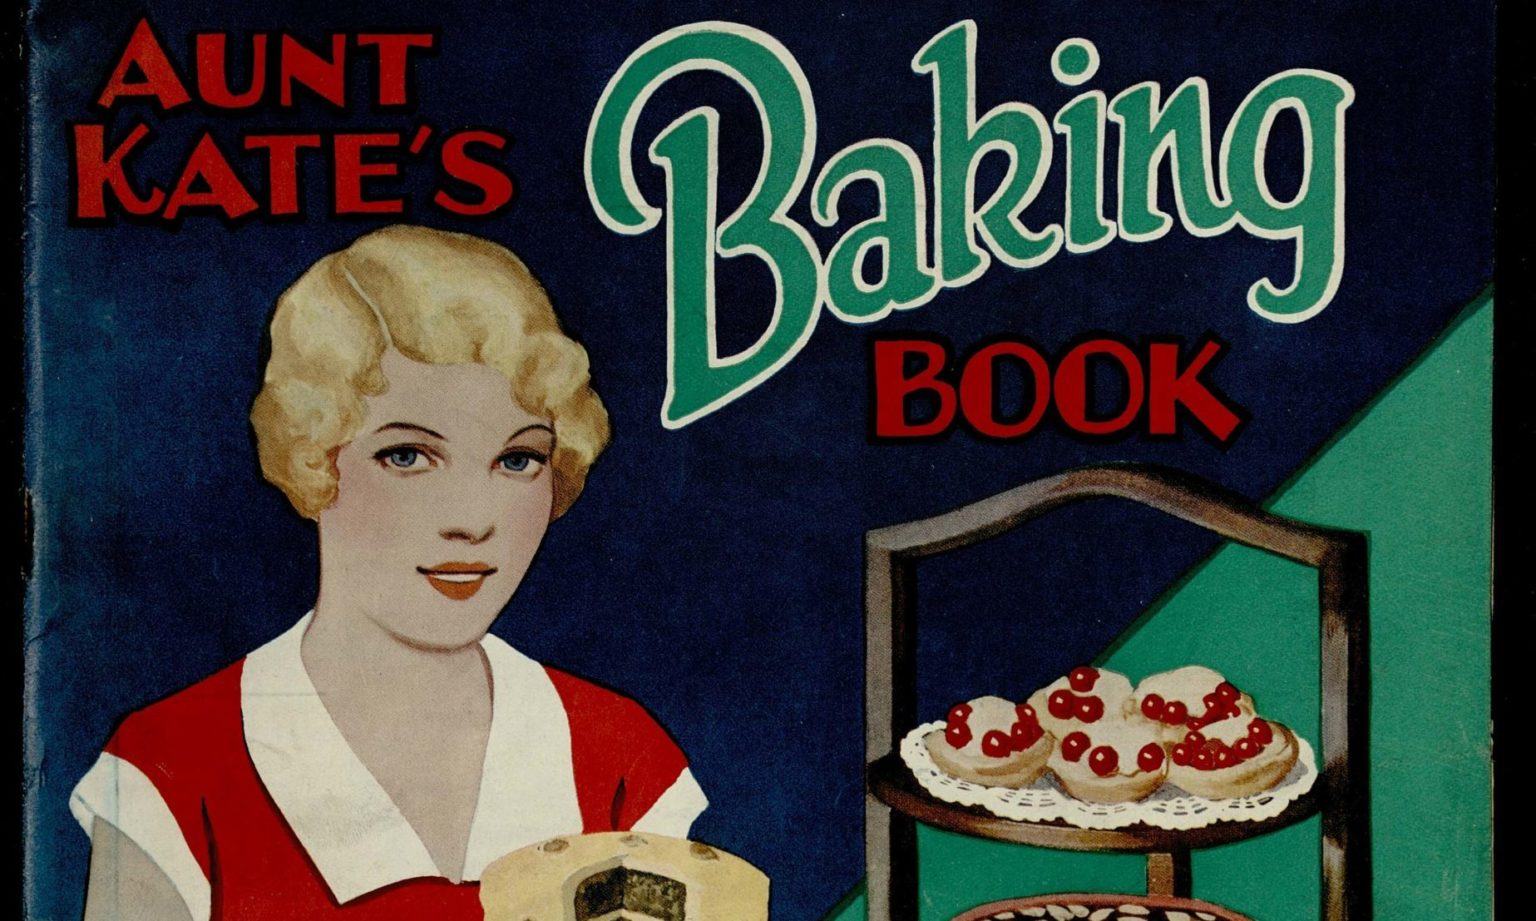 Aunt Kate's Baking Book from 1933